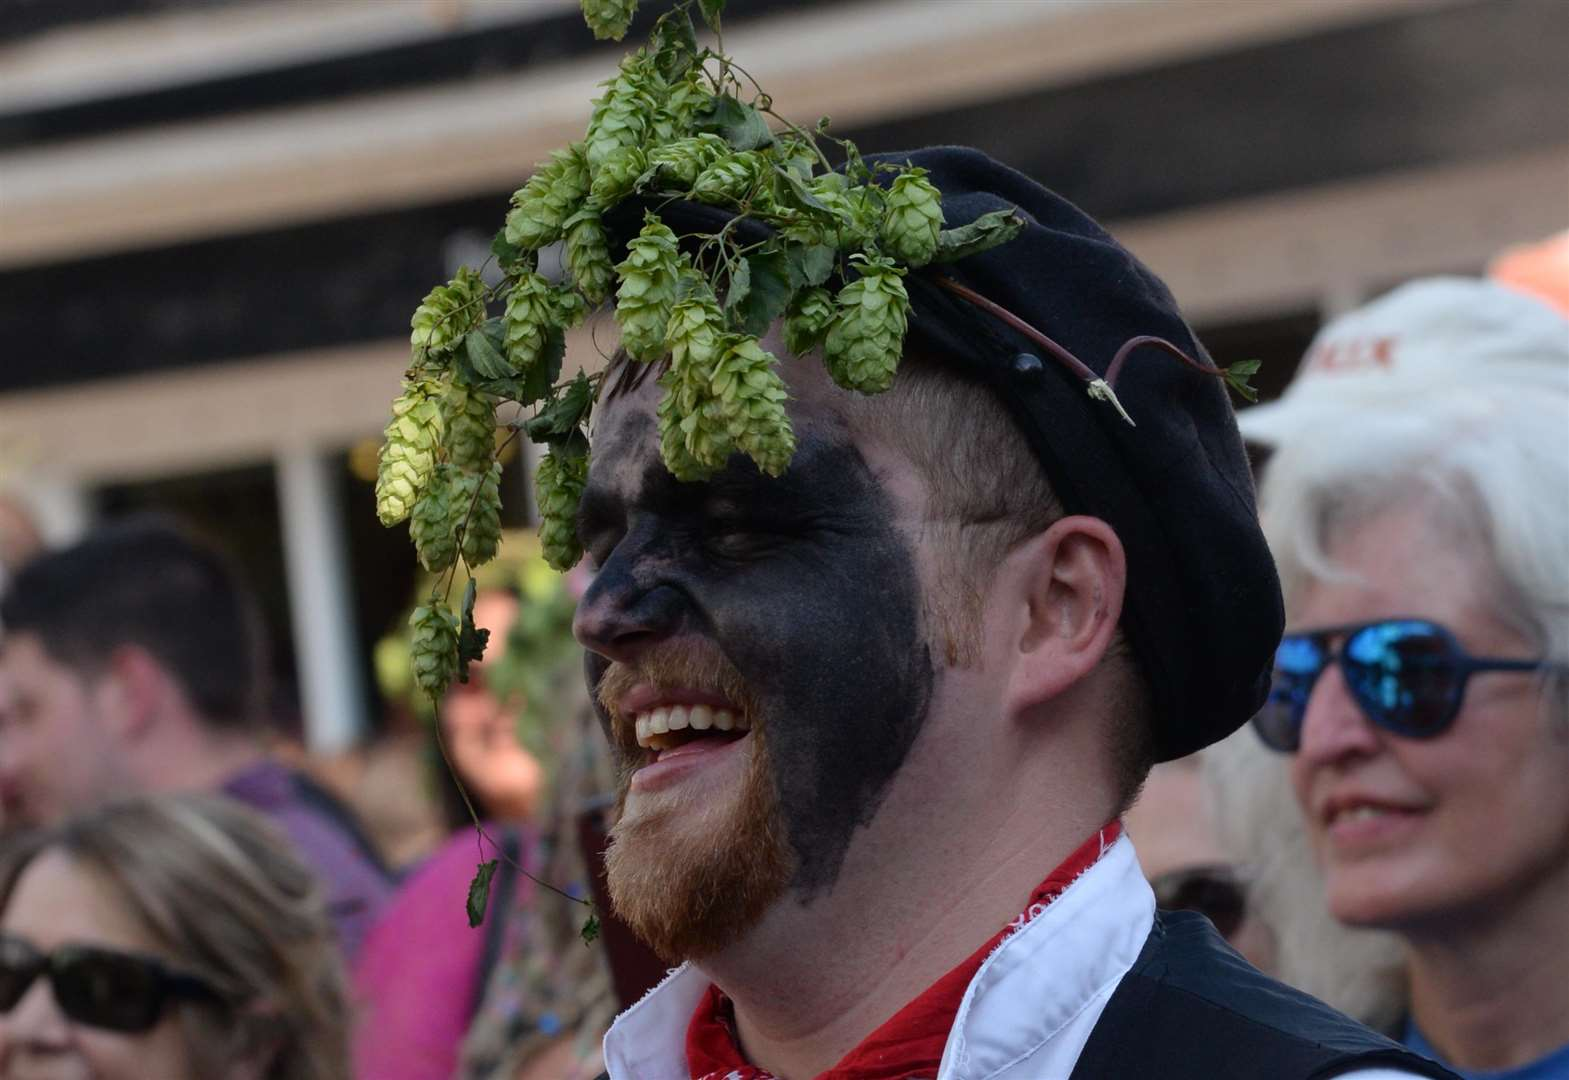 Hop festival in pictures